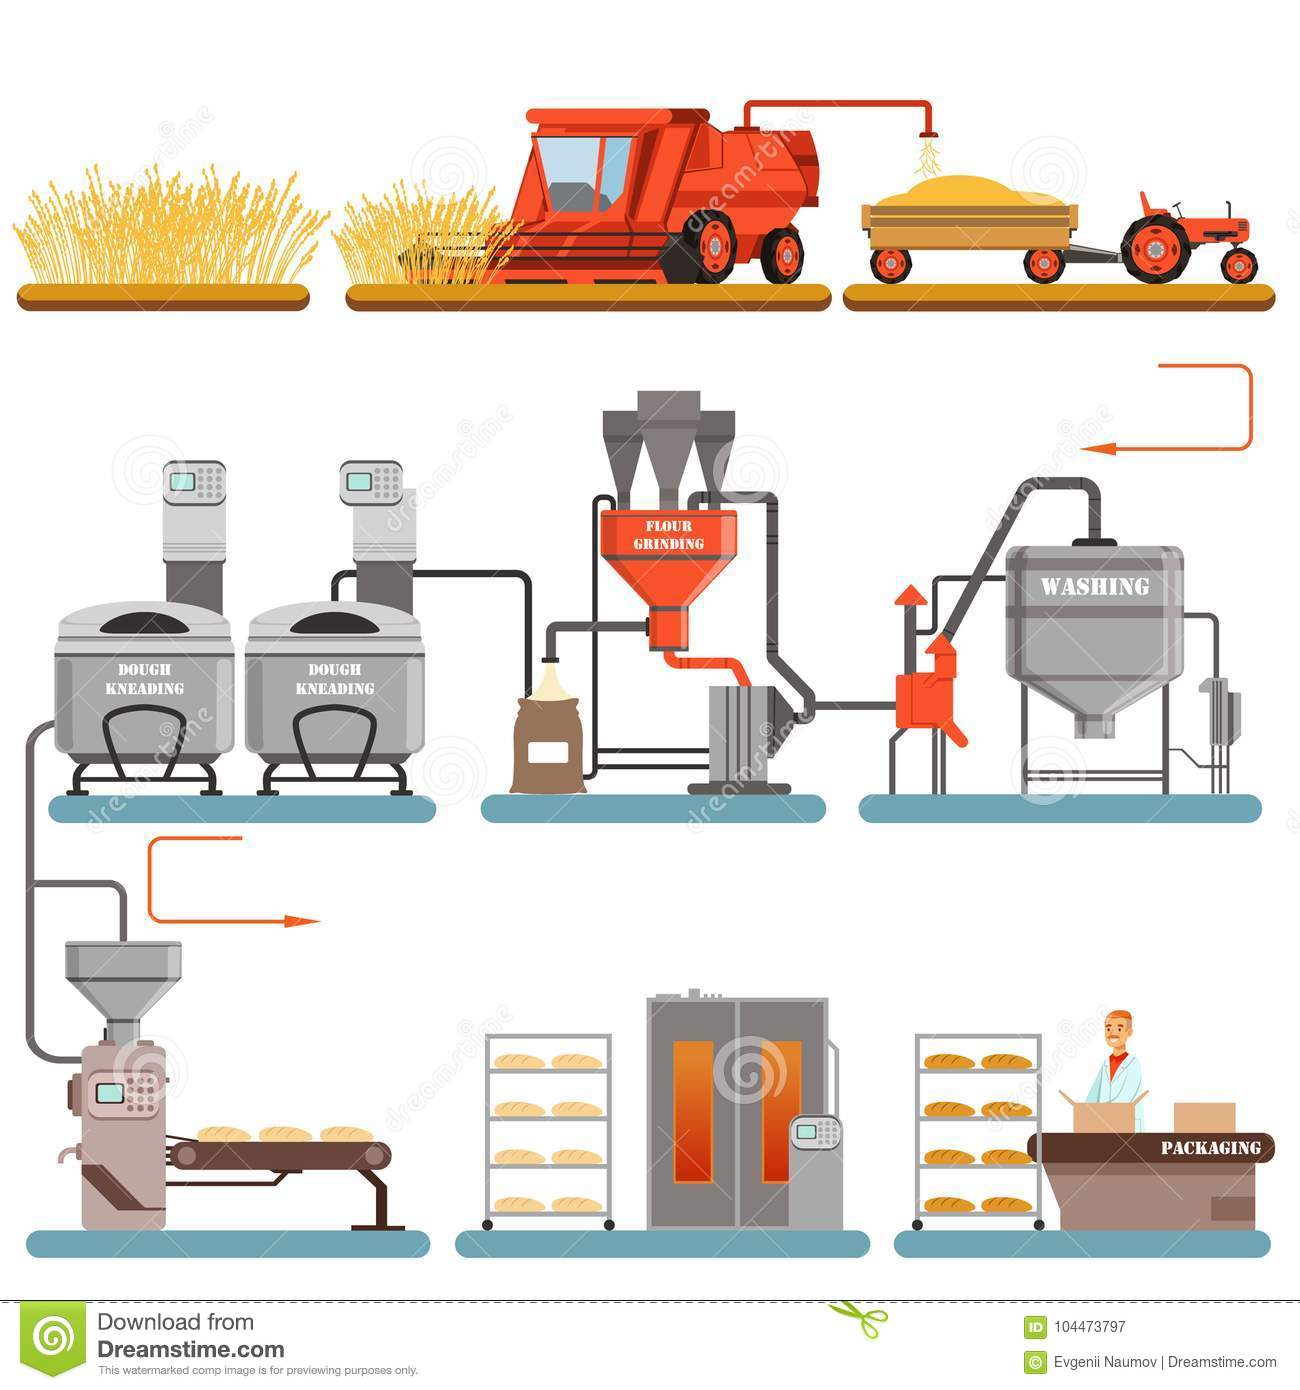 Bread production process stages from wheat harvest to freshly baked bread vector Illustrations